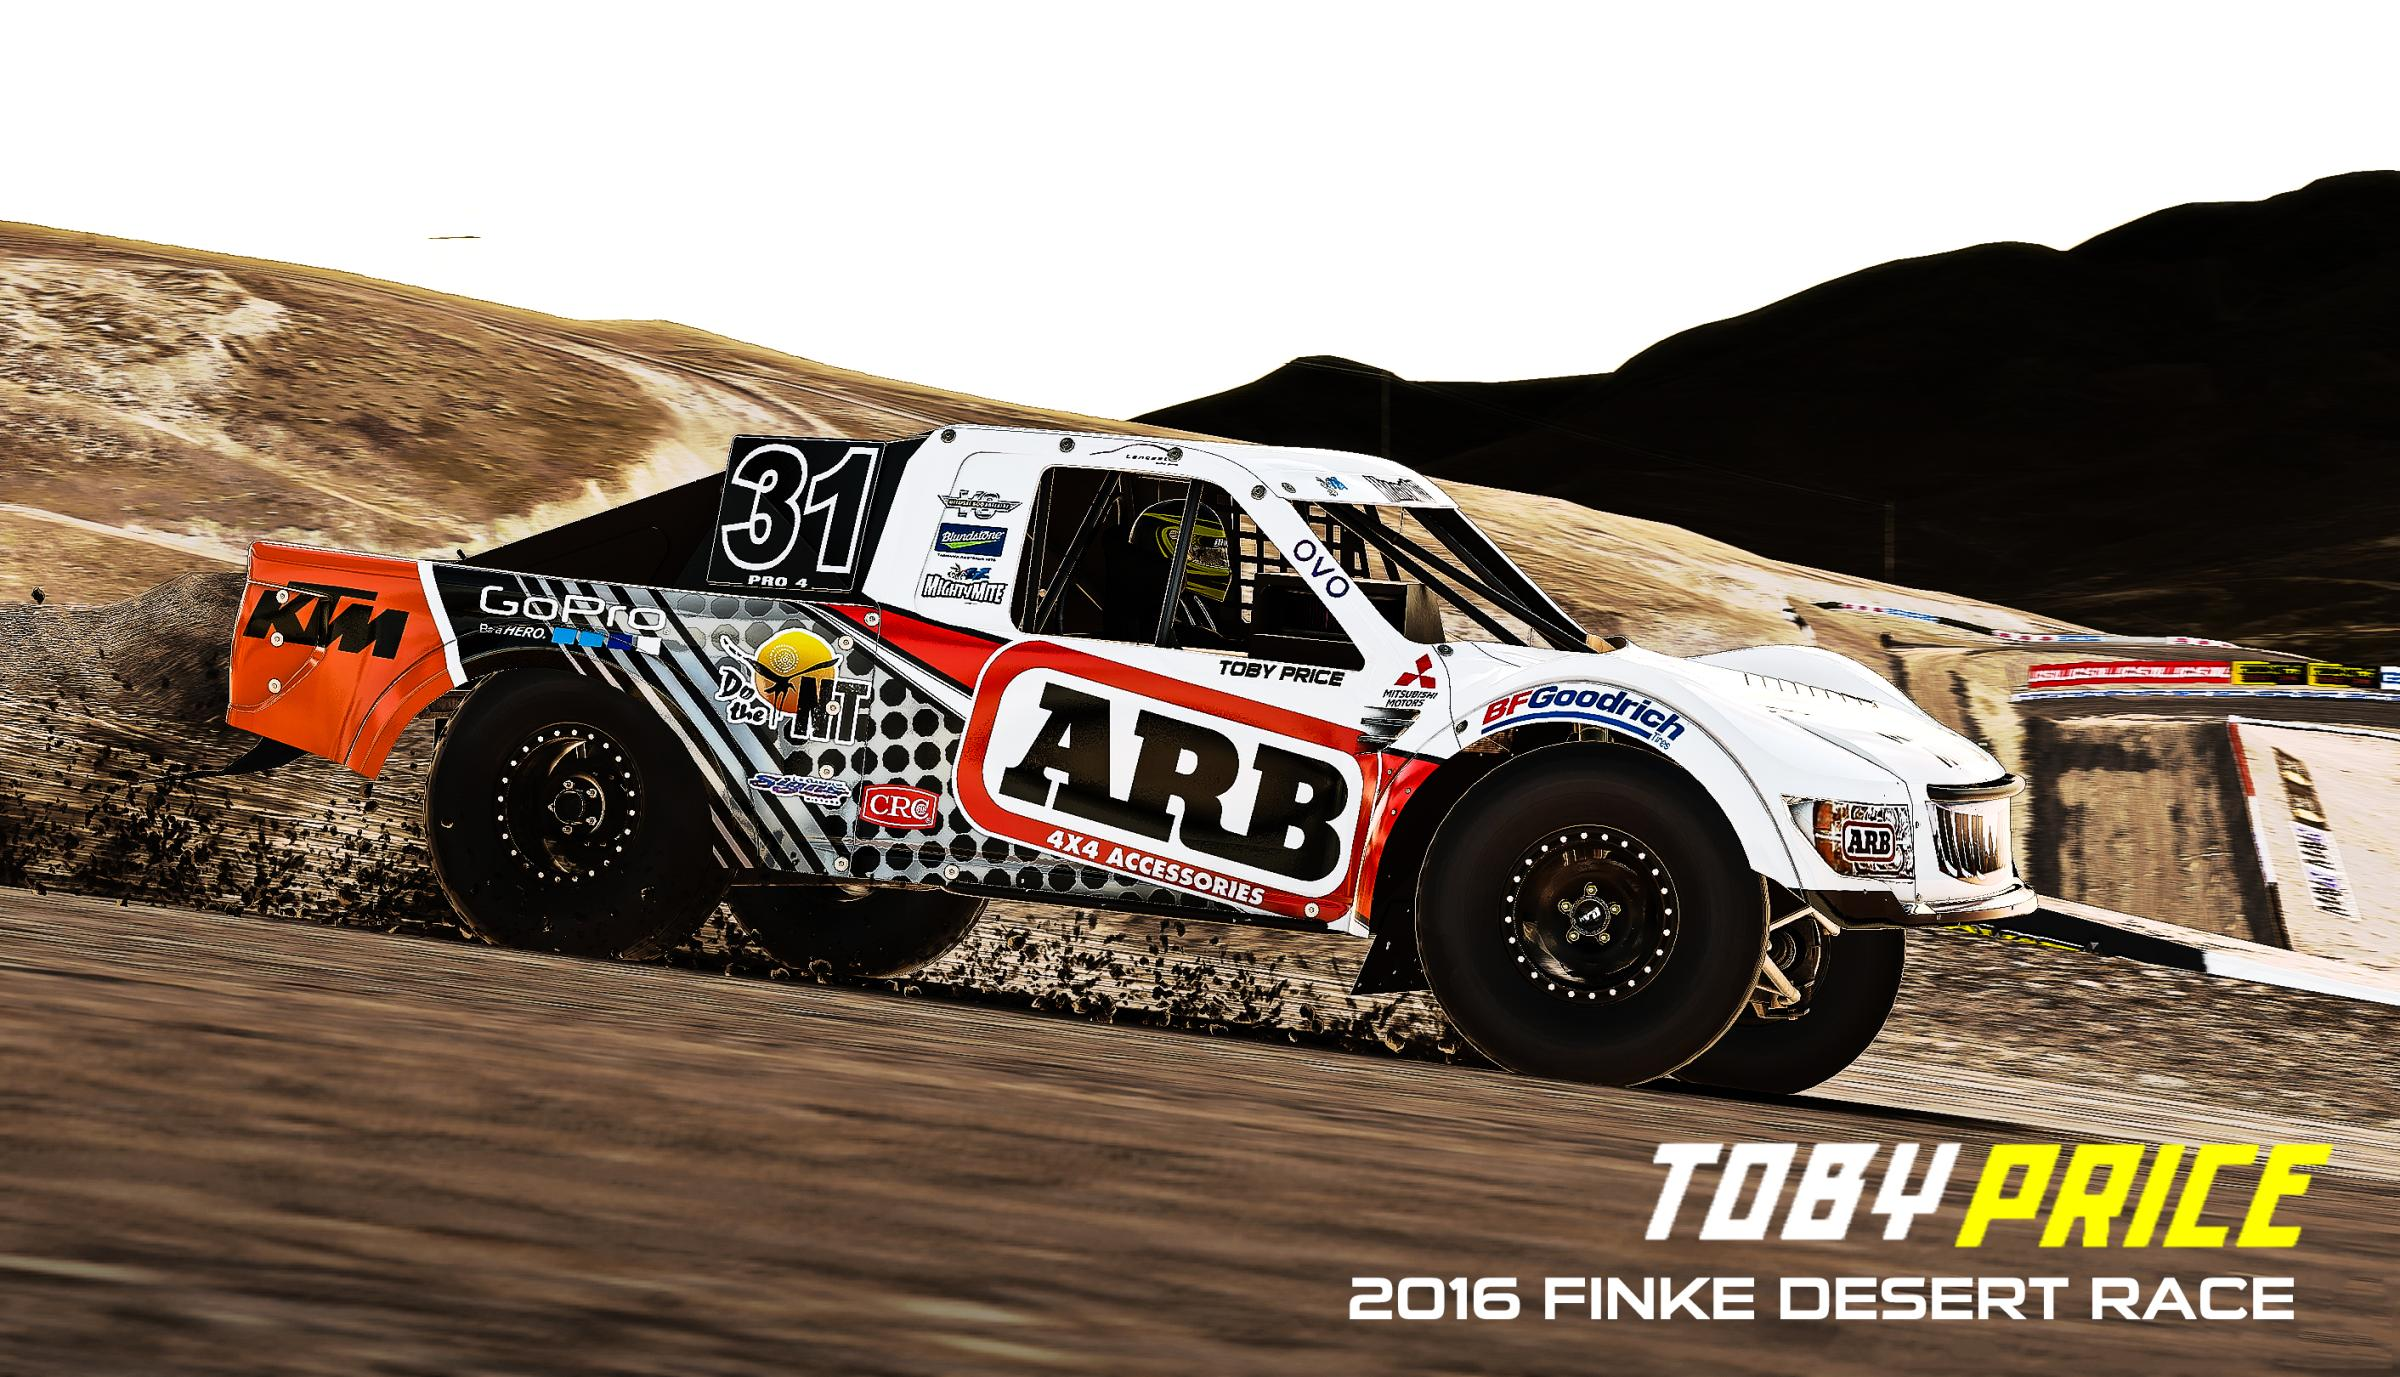 Preview of TOBY PRICE  ARB Trophy Truck    2016 Finke Desert Race Paint by Yuji Asakawa